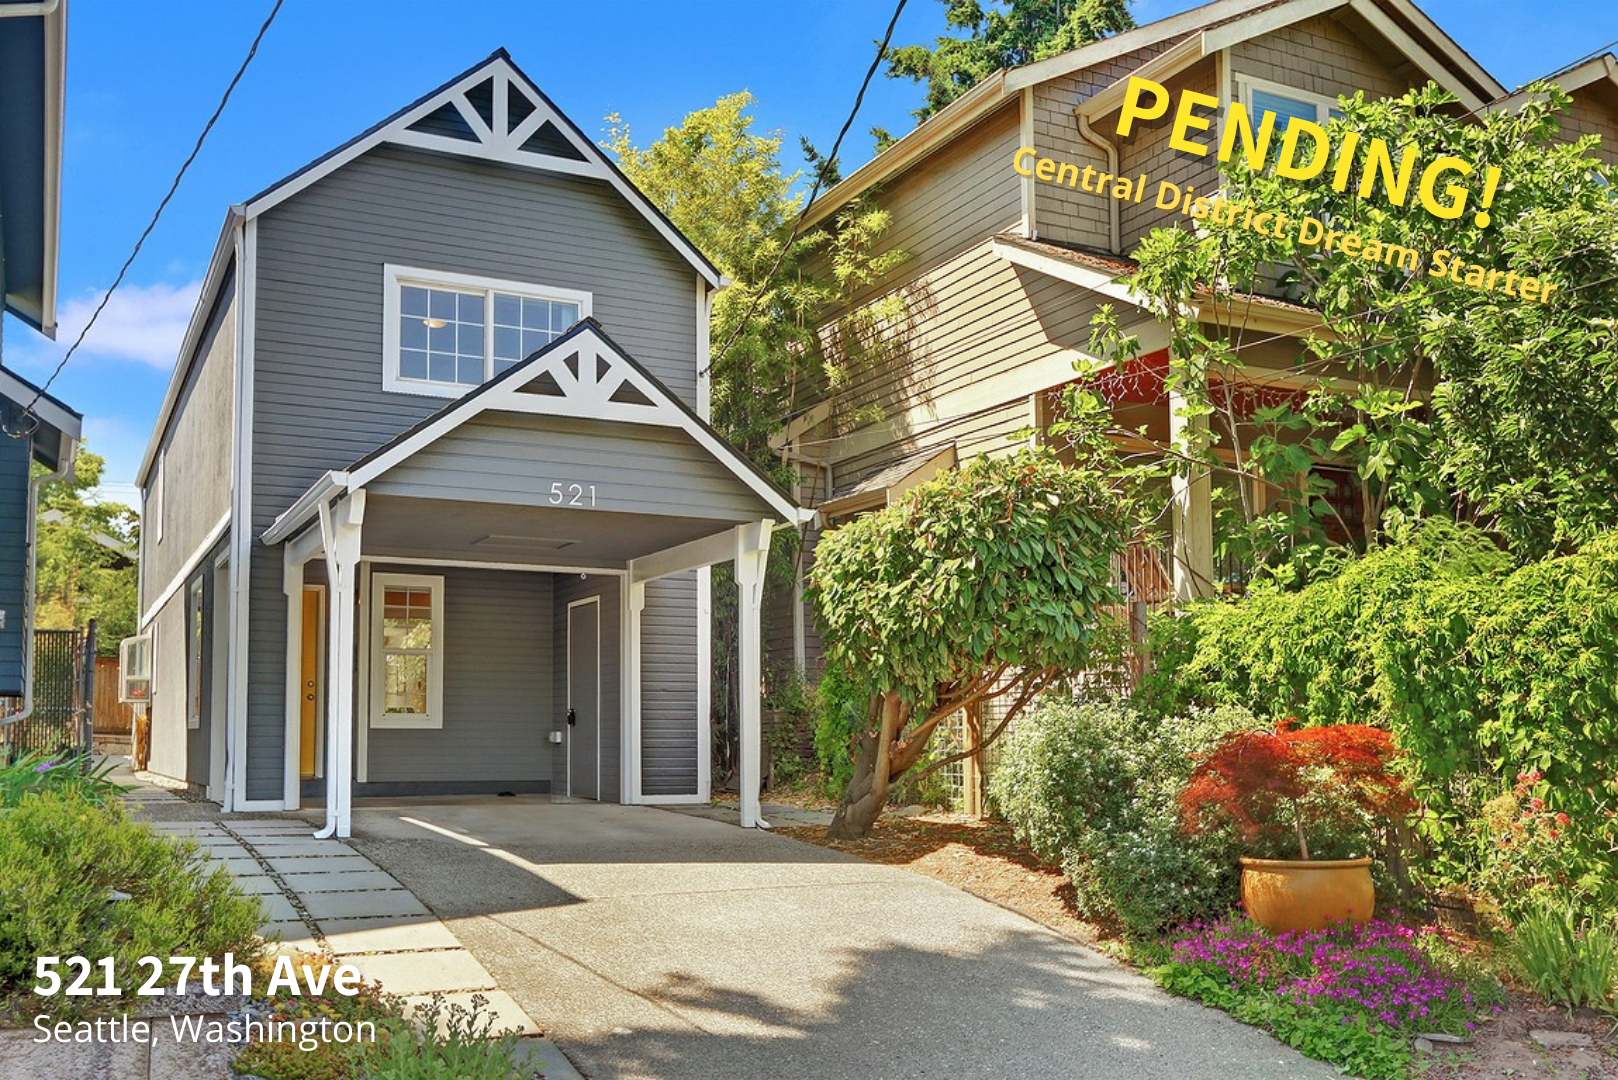 521 27th Ave - PENDING!